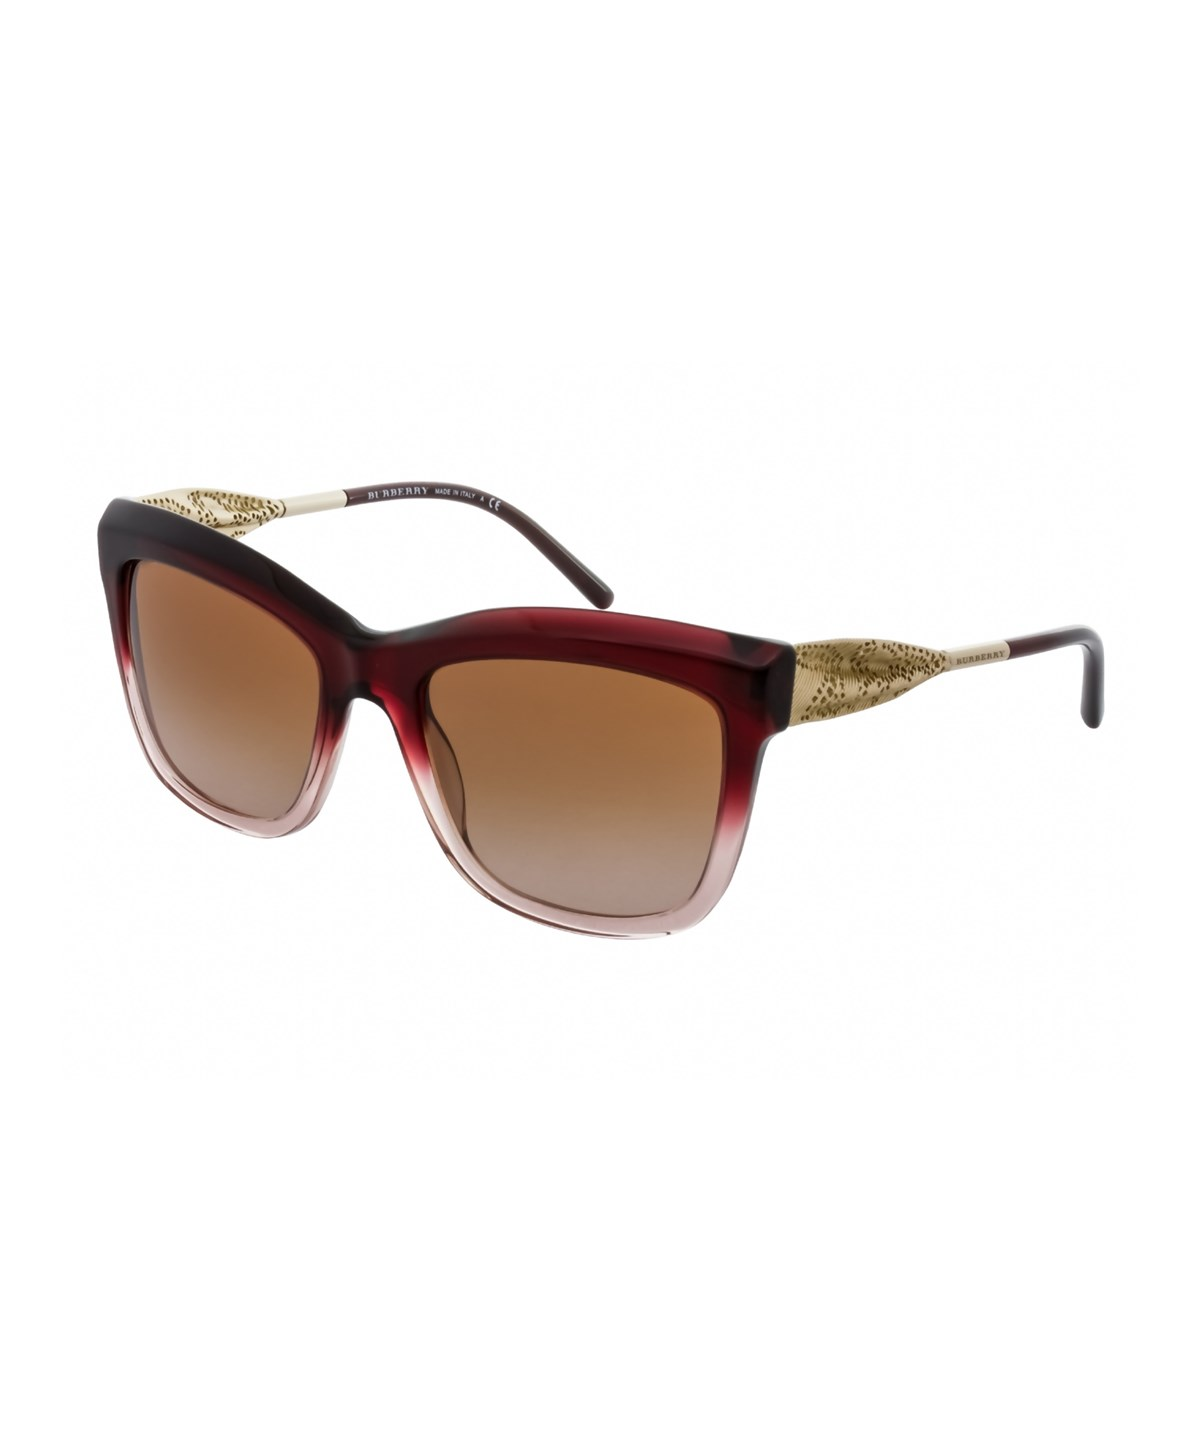 BURBERRY Be4207 355313' in Bordeaux/Brown Gradient